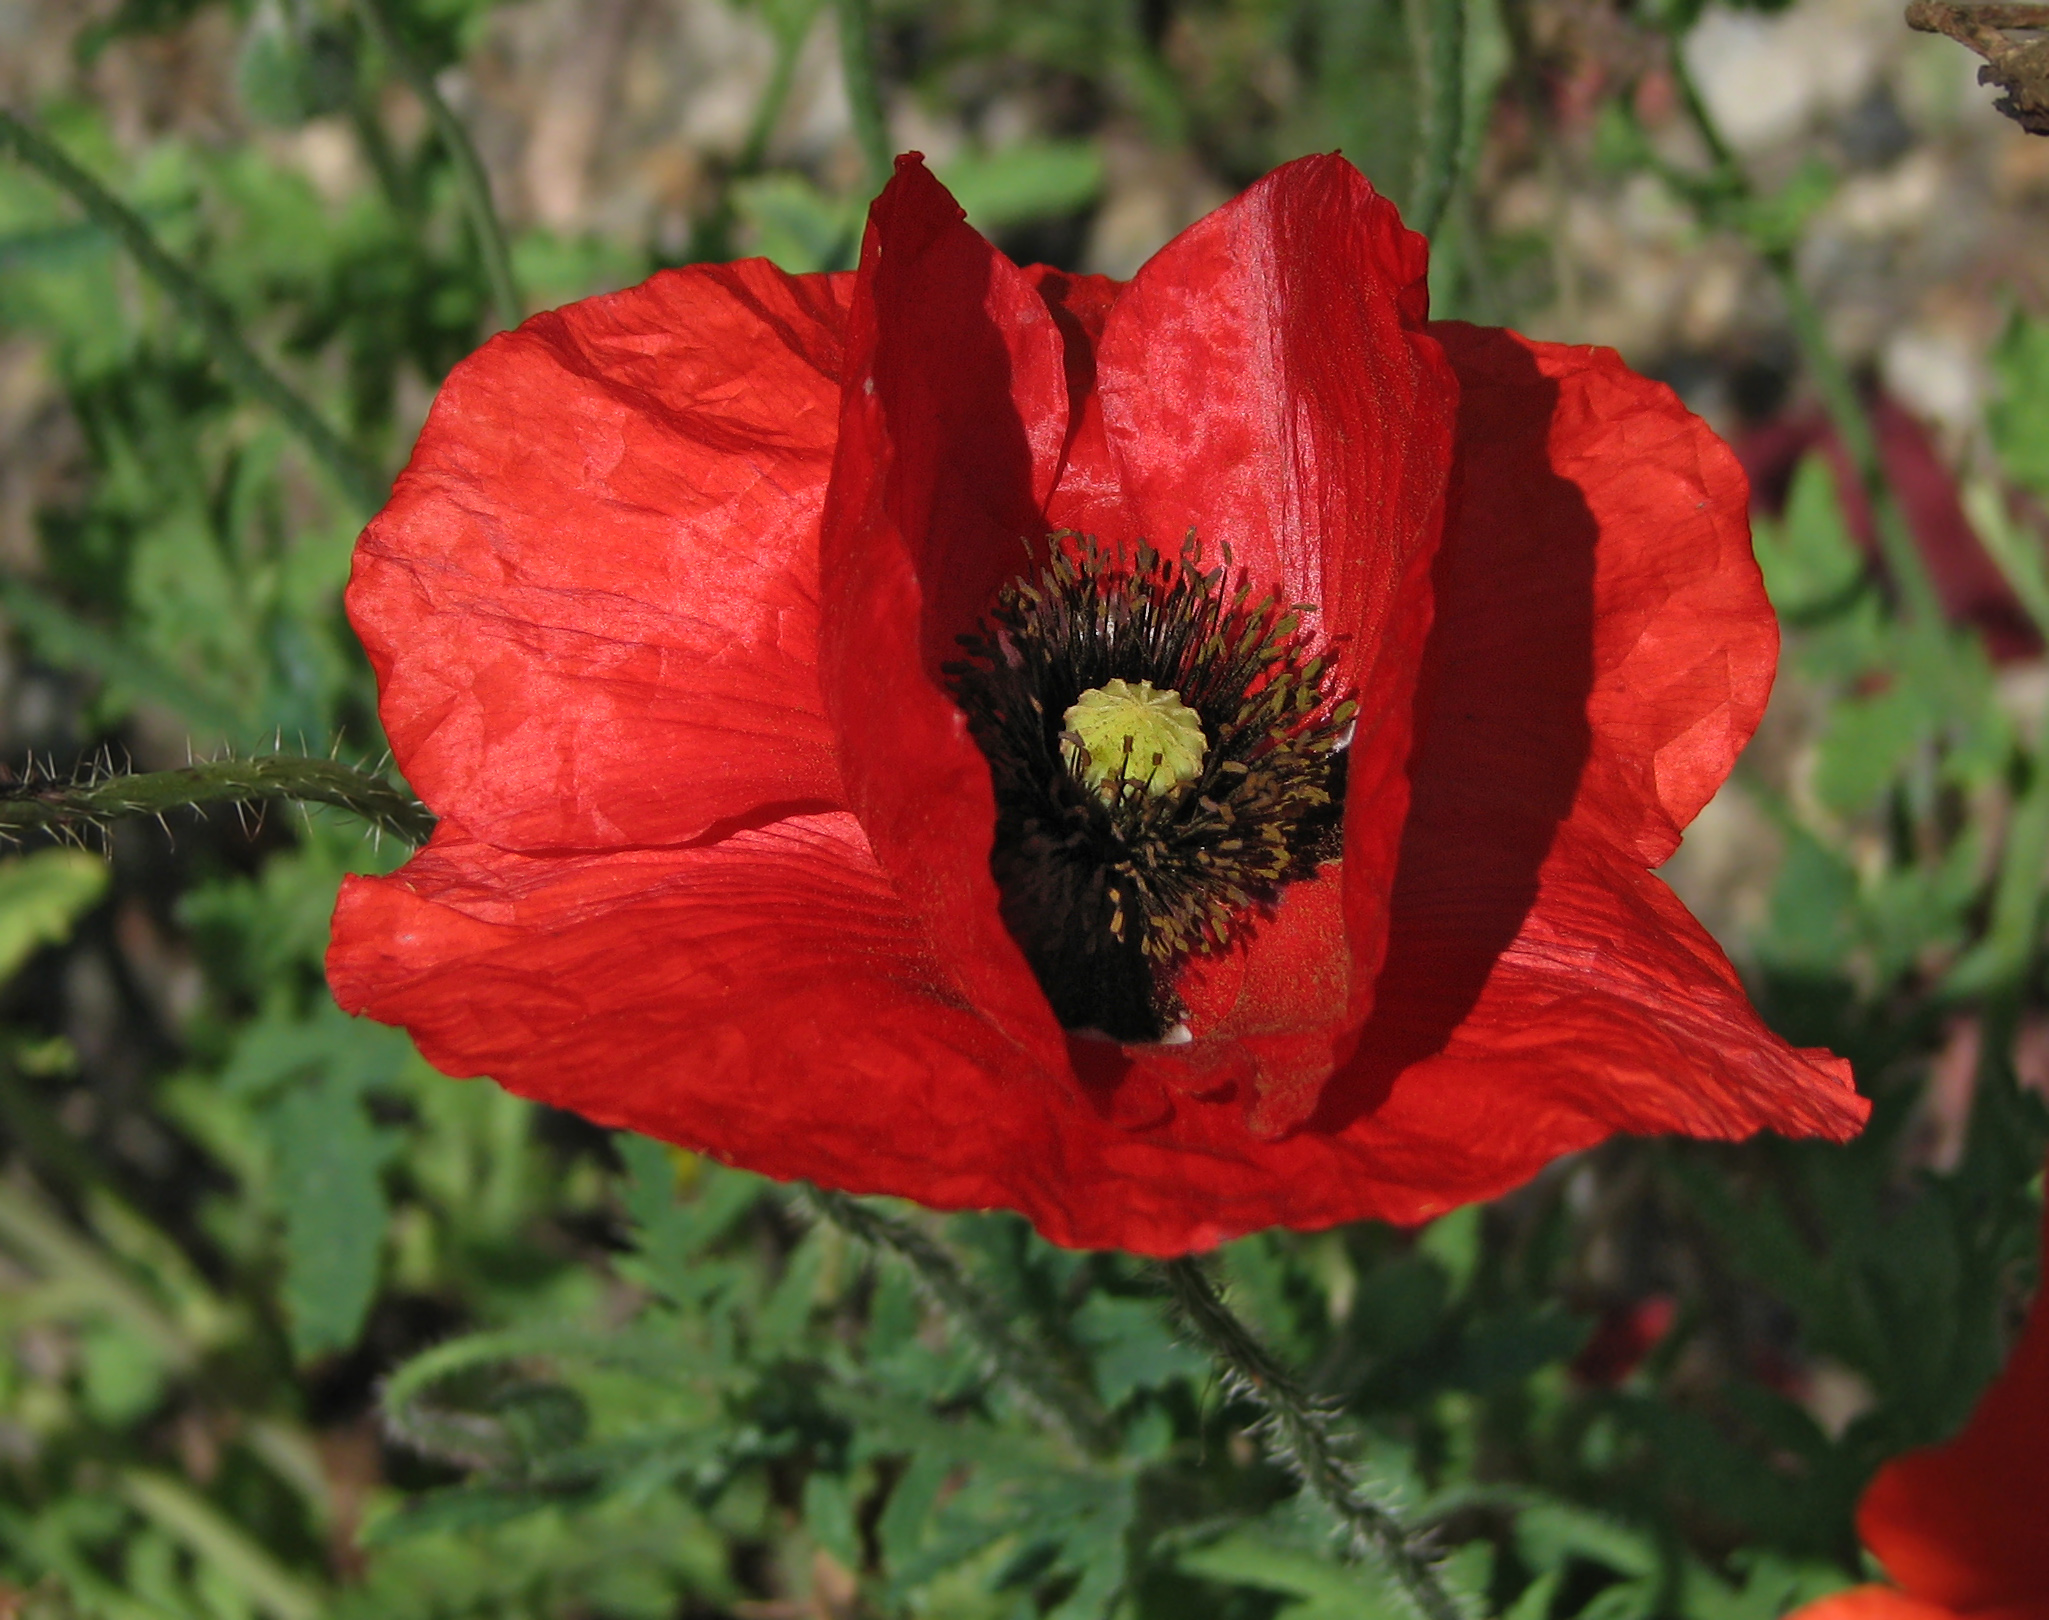 File:Red Poppy Papaver Flower Closeup 2049px.jpg - Wikimedia Commons